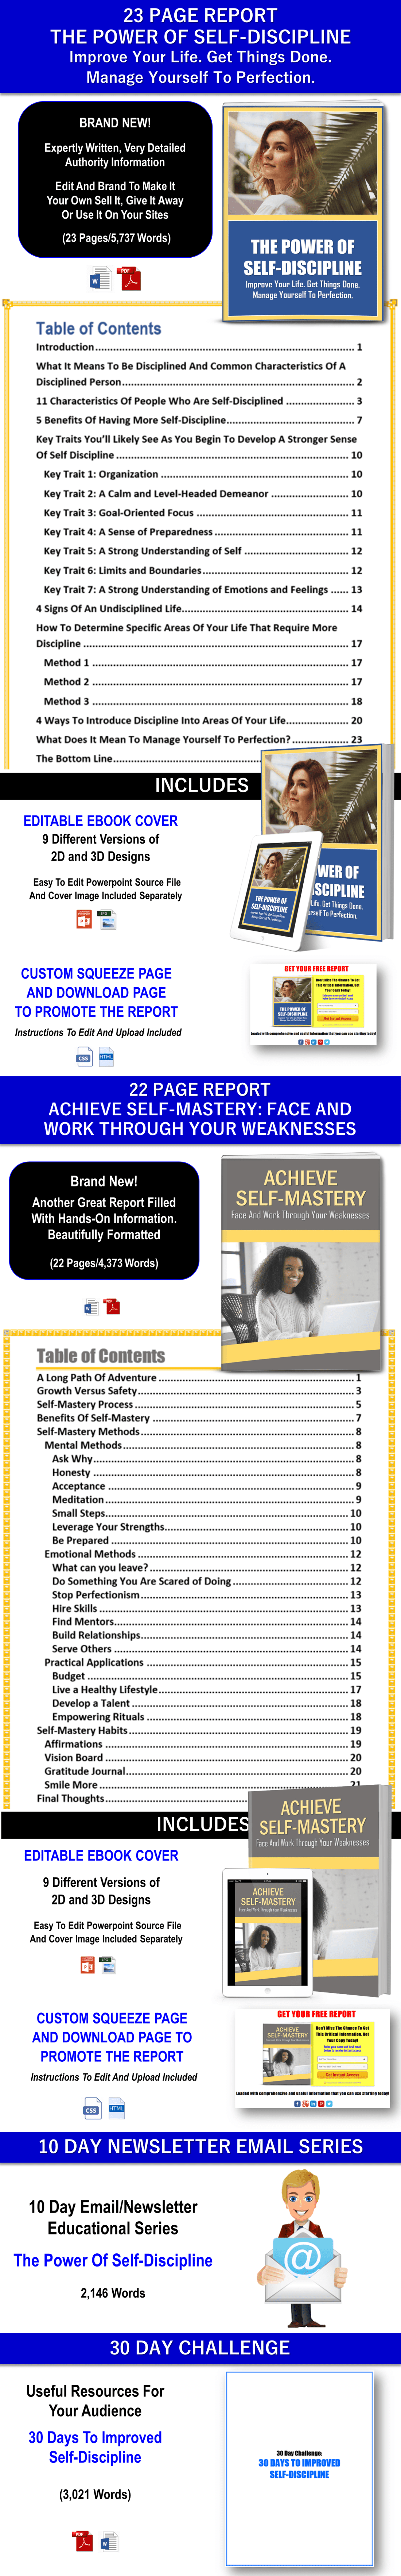 SELF-DISCIPLINE/SELF-MASTERY Content With PLR Rights